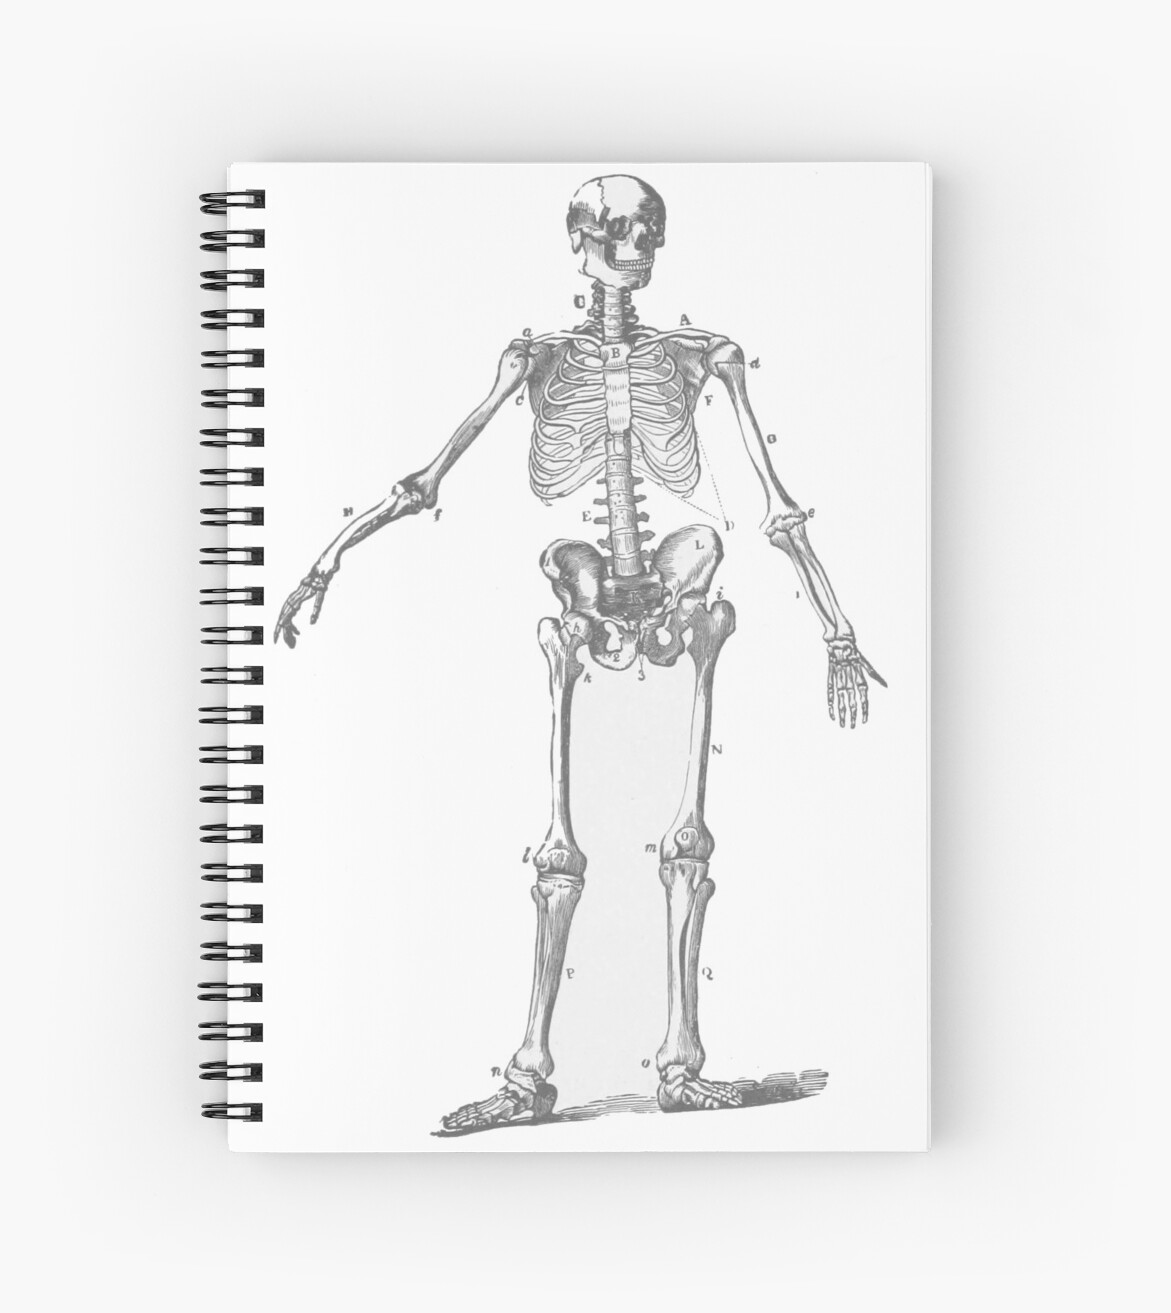 The human skeleton as a pencil drawing